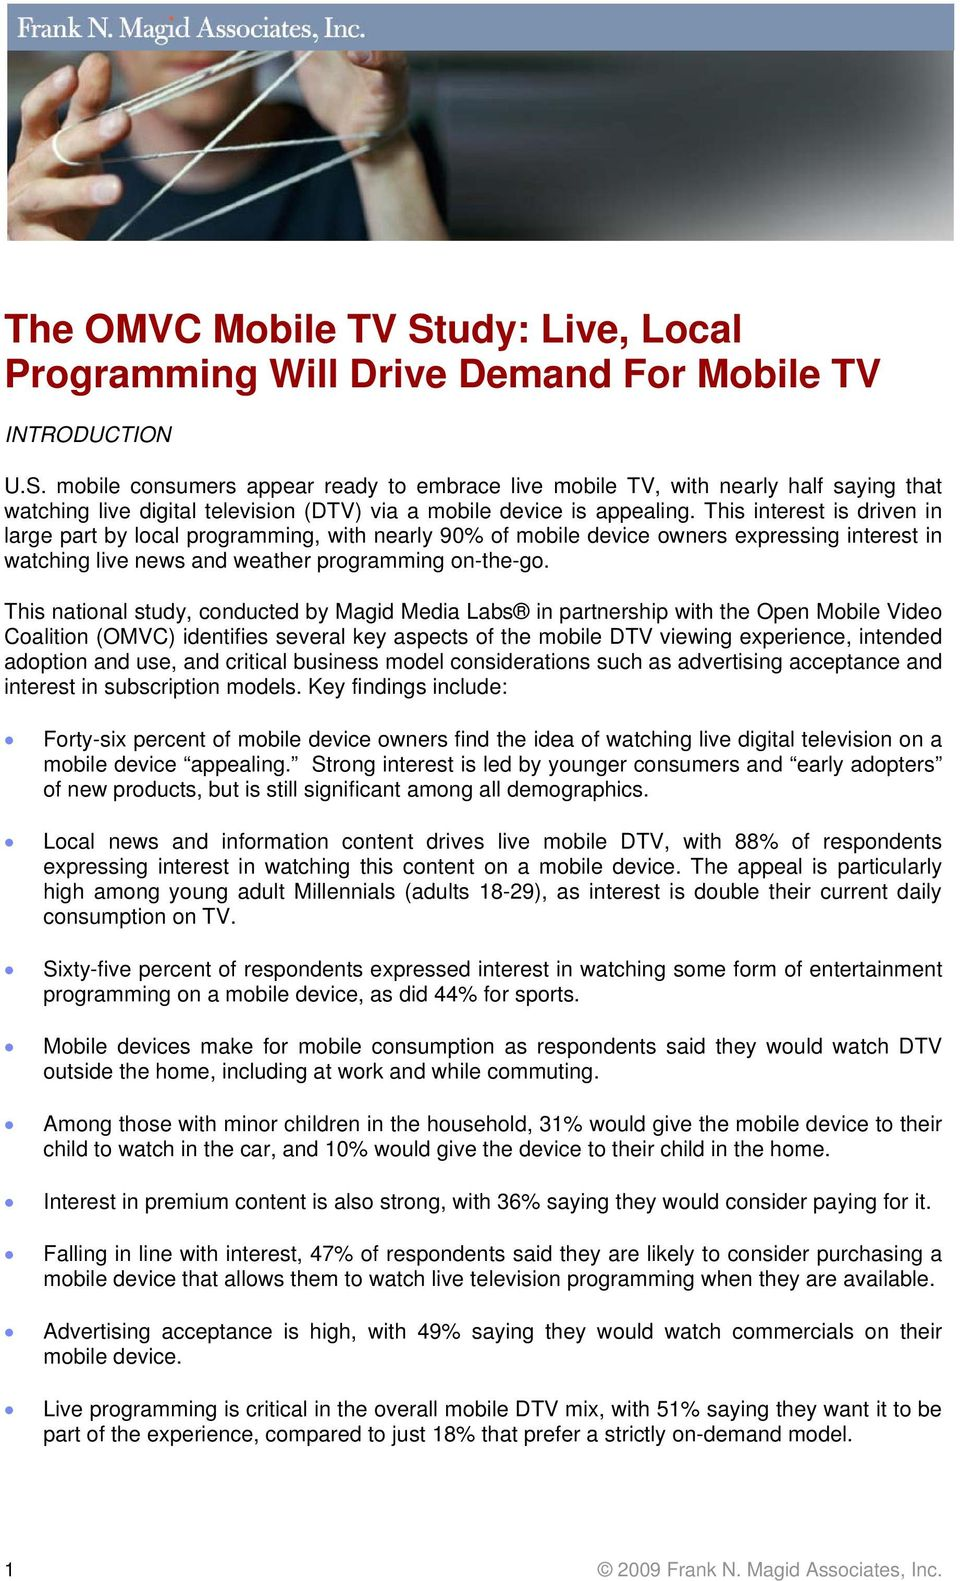 This national study, conducted by Magid Media Labs in partnership with the Open Mobile Video Coalition (OMVC) identifies several key aspects of the mobile DTV viewing experience, intended adoption